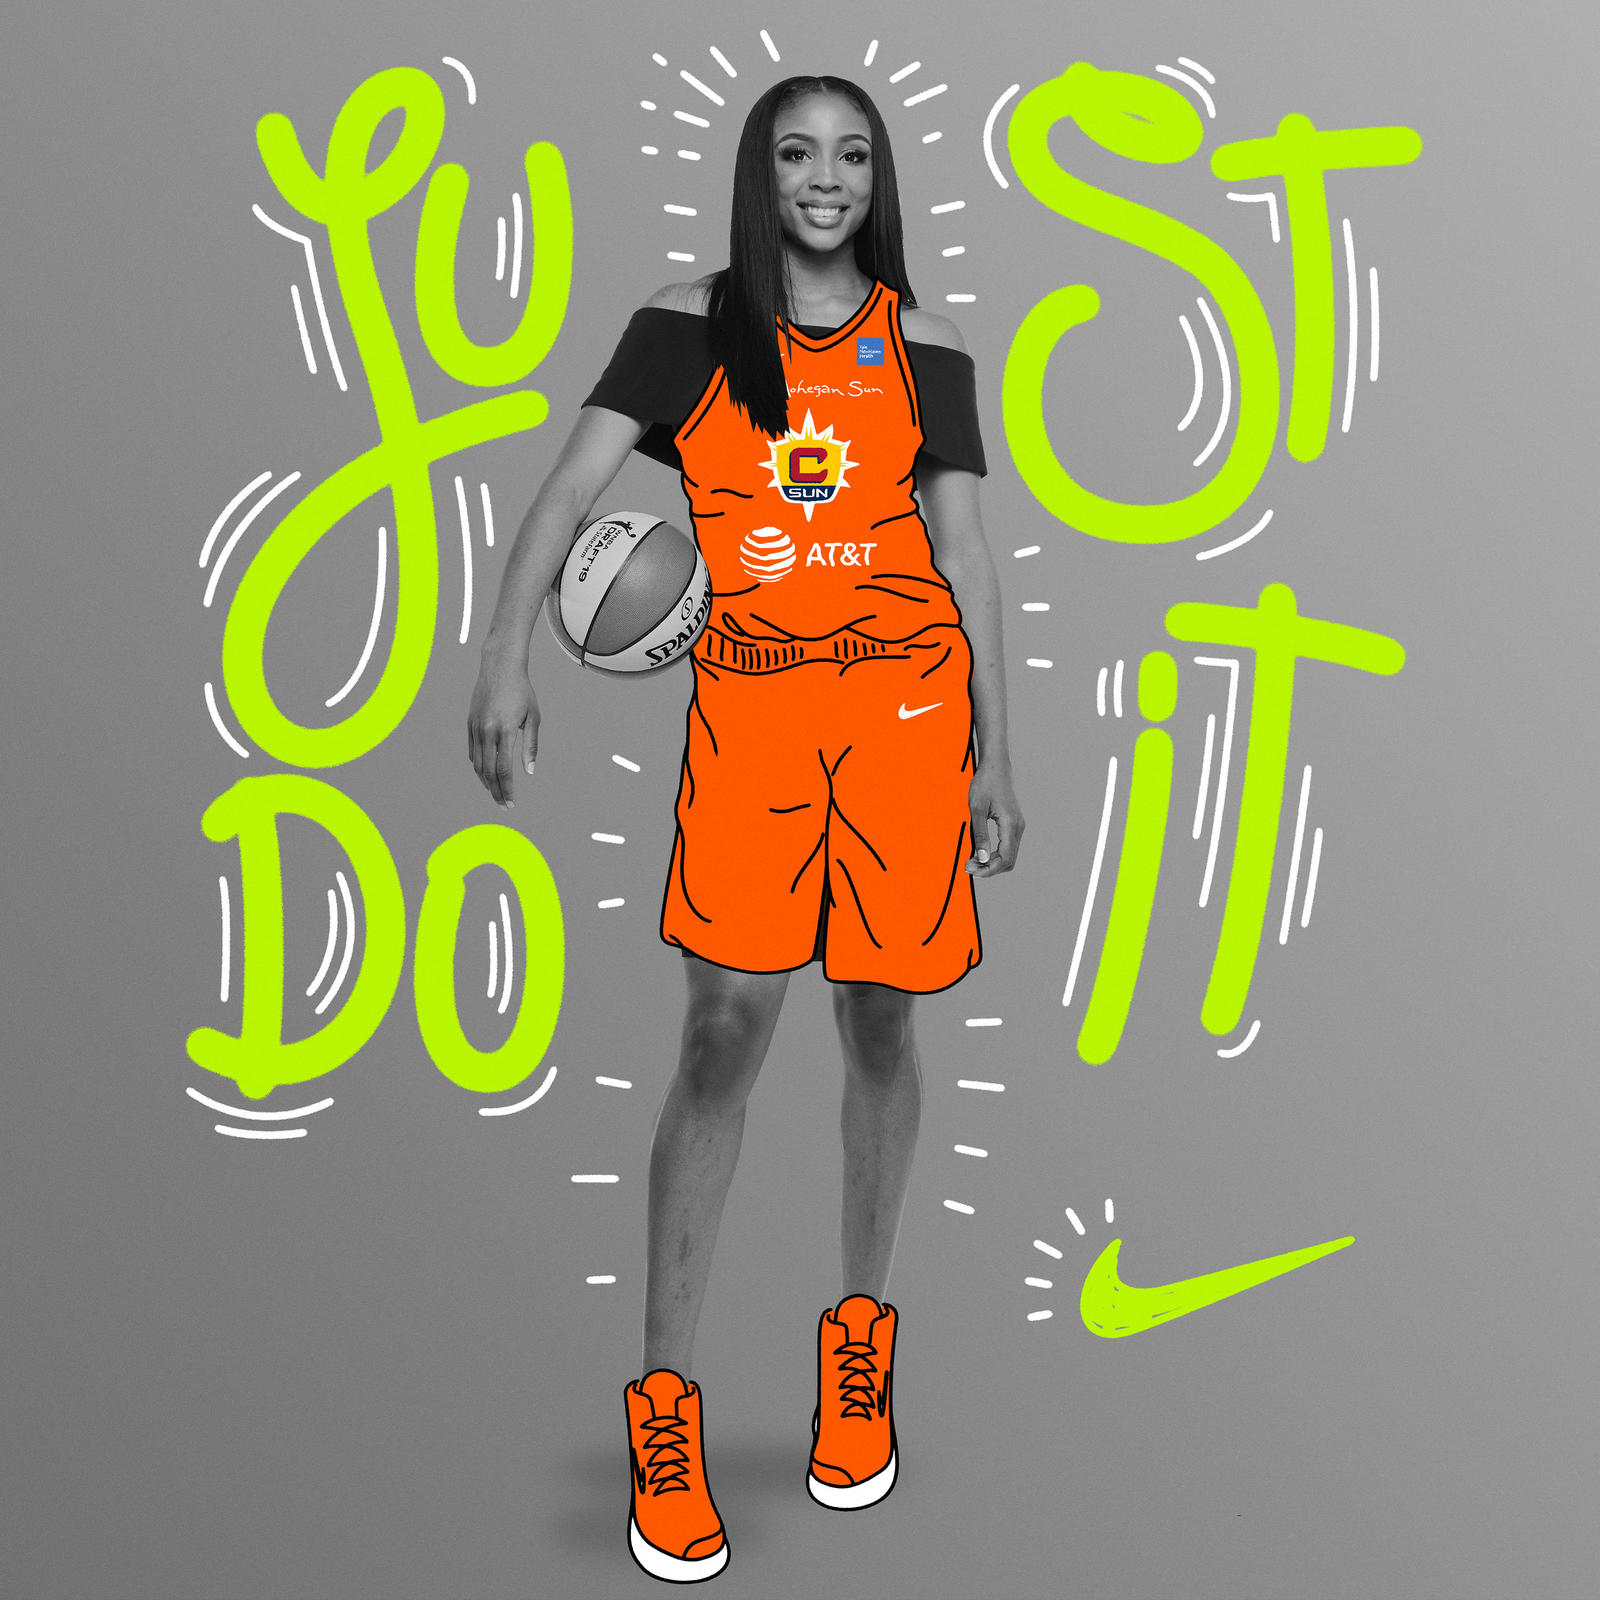 The most dominant rebounder in college basketball last season, the 6'4″ forward became the first women's player in more than 15 years to tally 30 rebounds and 30 points in a single game. She cites the brand's innovation, creativity and style as top reasons for her excitement in joining the Nike family.